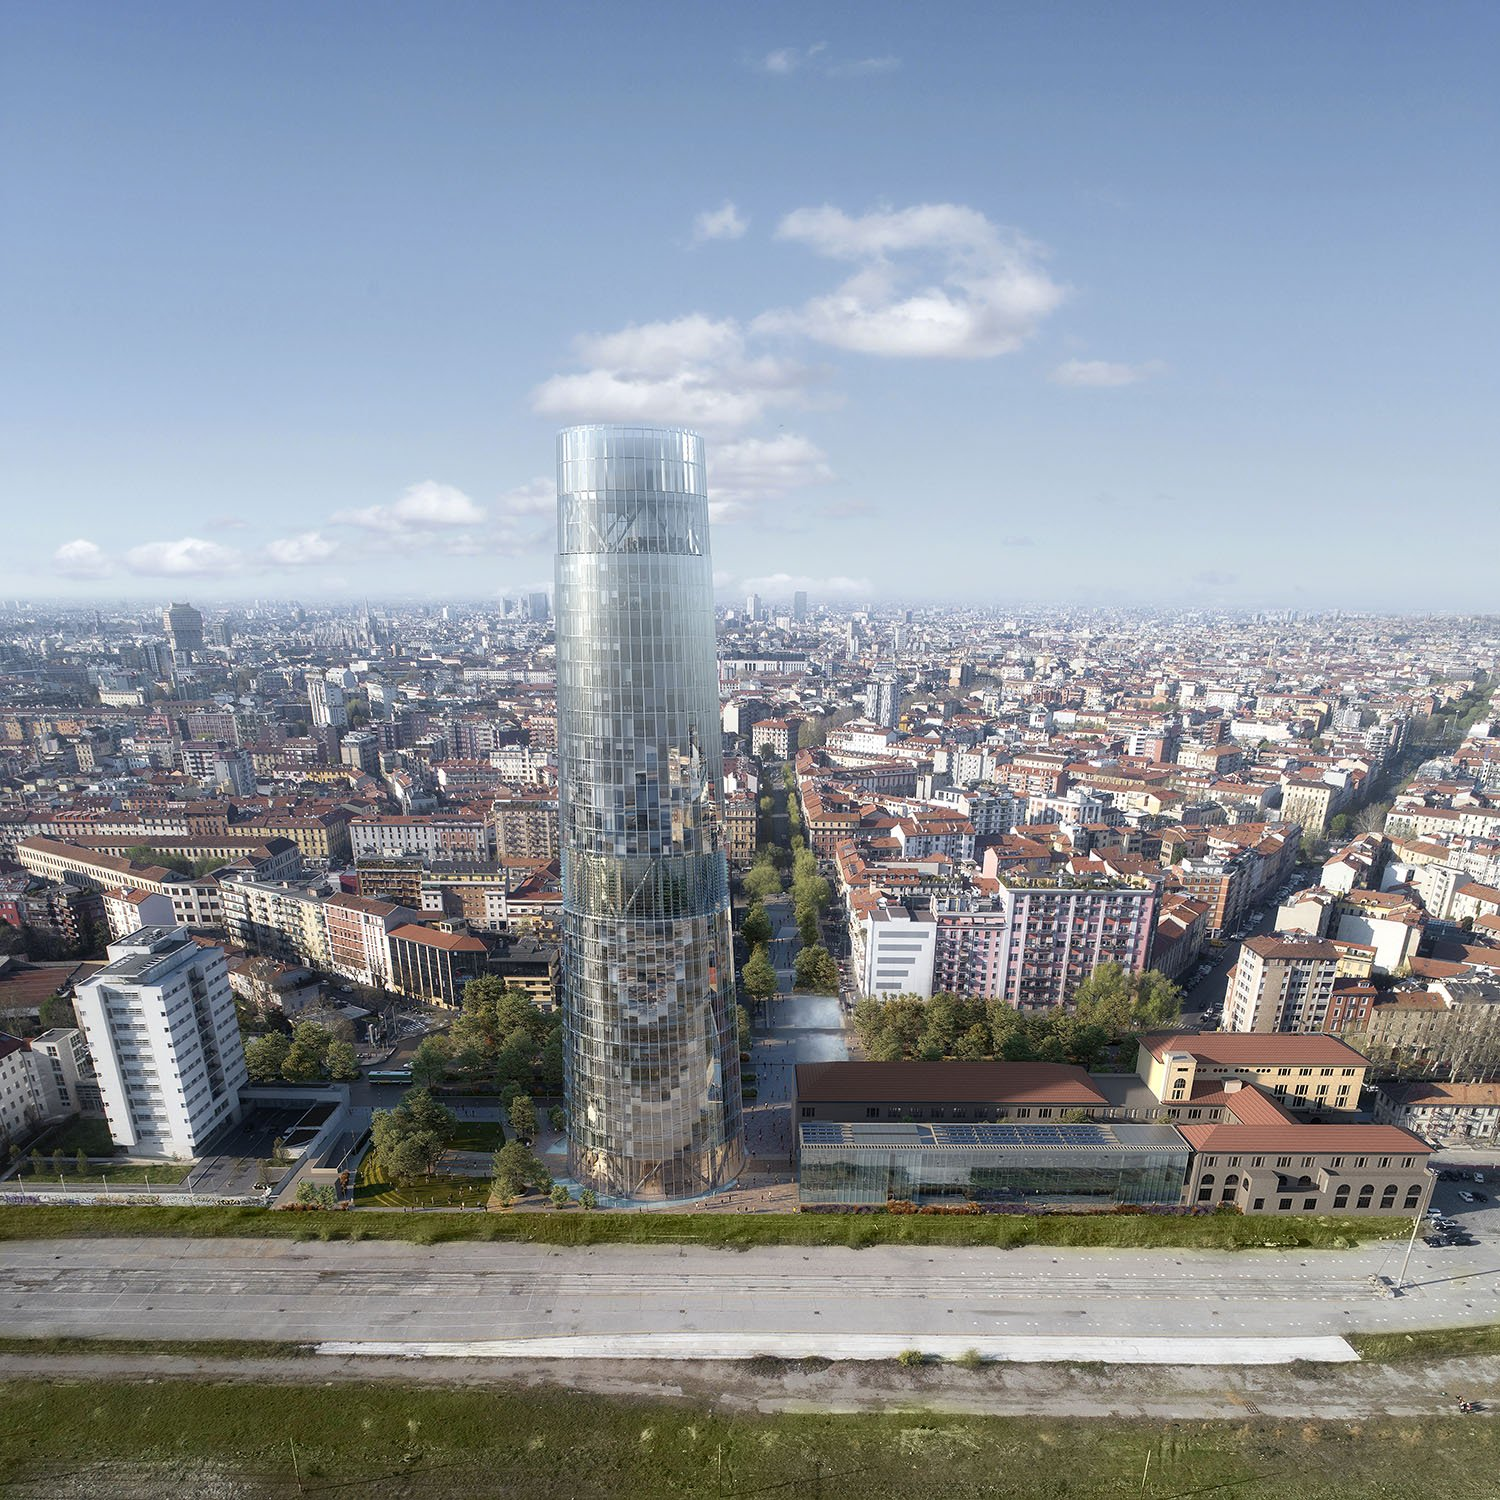 A2A Headquarters (Milan, Italy) render by ACPV